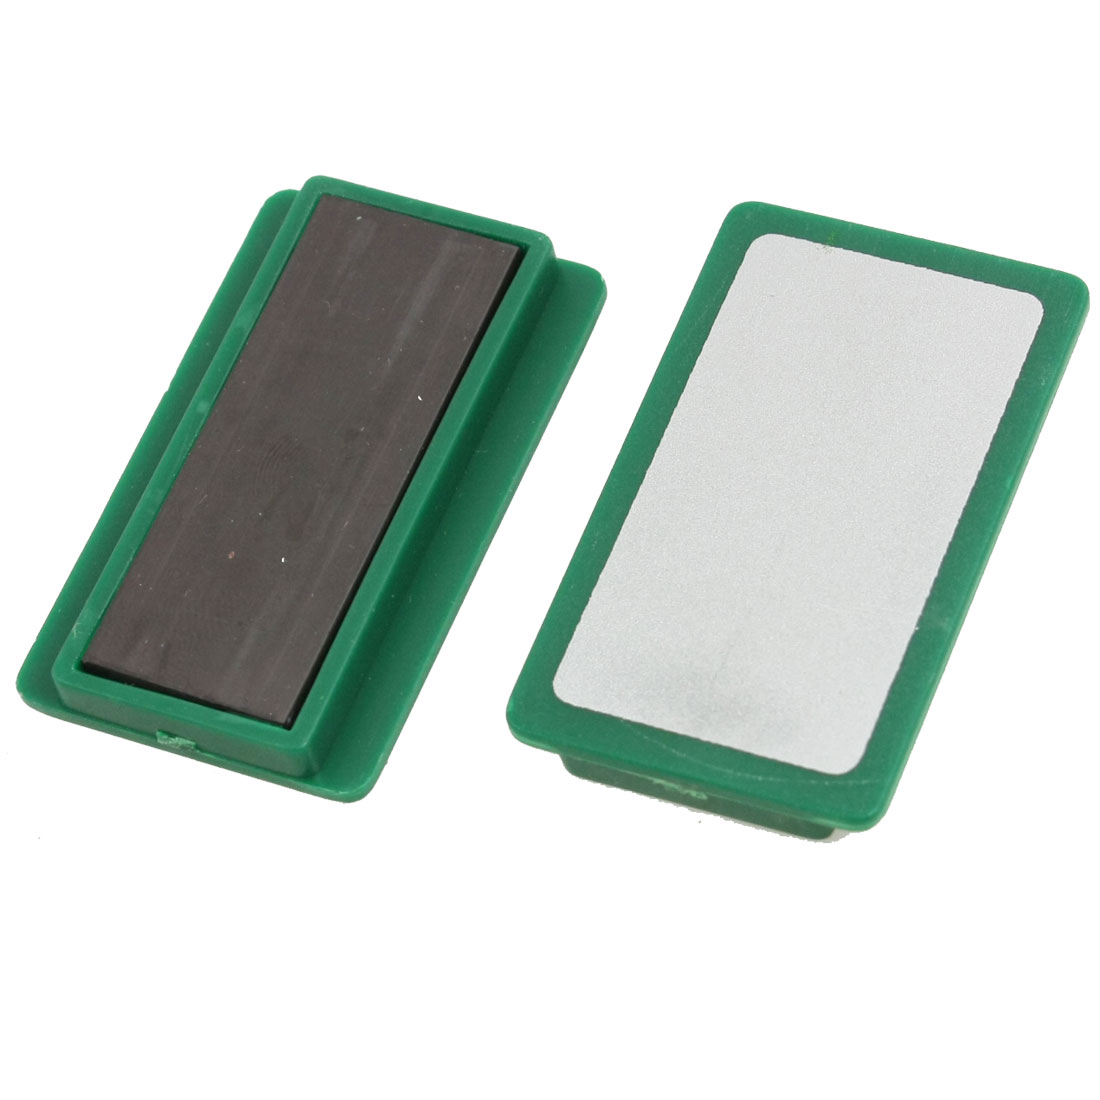 School Whiteboard 5cm x 3cm Magnetic Stripes Fixed File Tool Green 4 Pcs